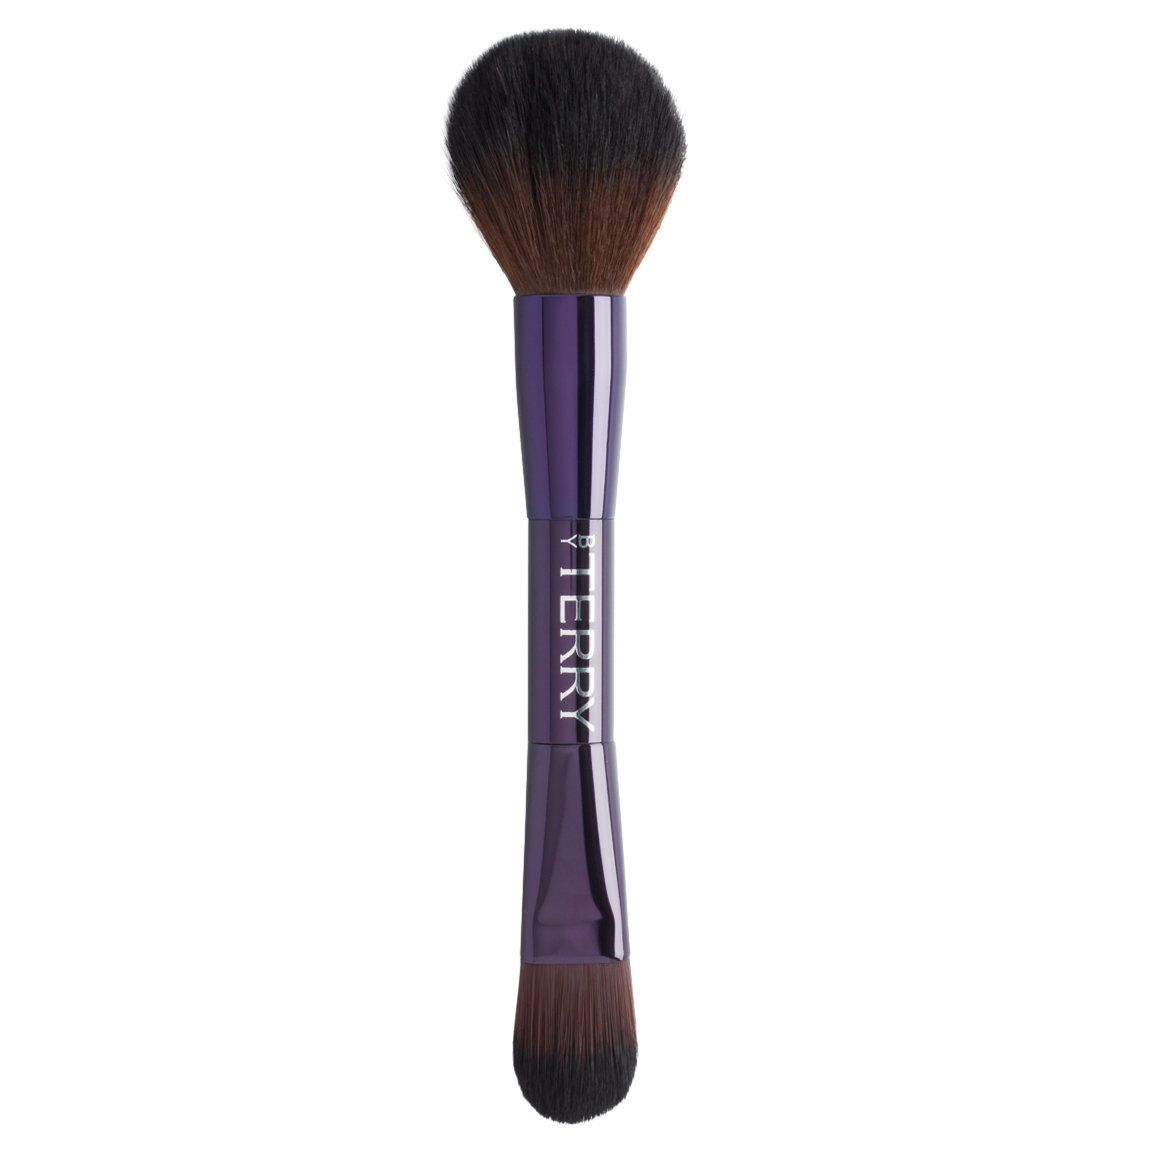 BY TERRY Dual Ended Face Brush product swatch.